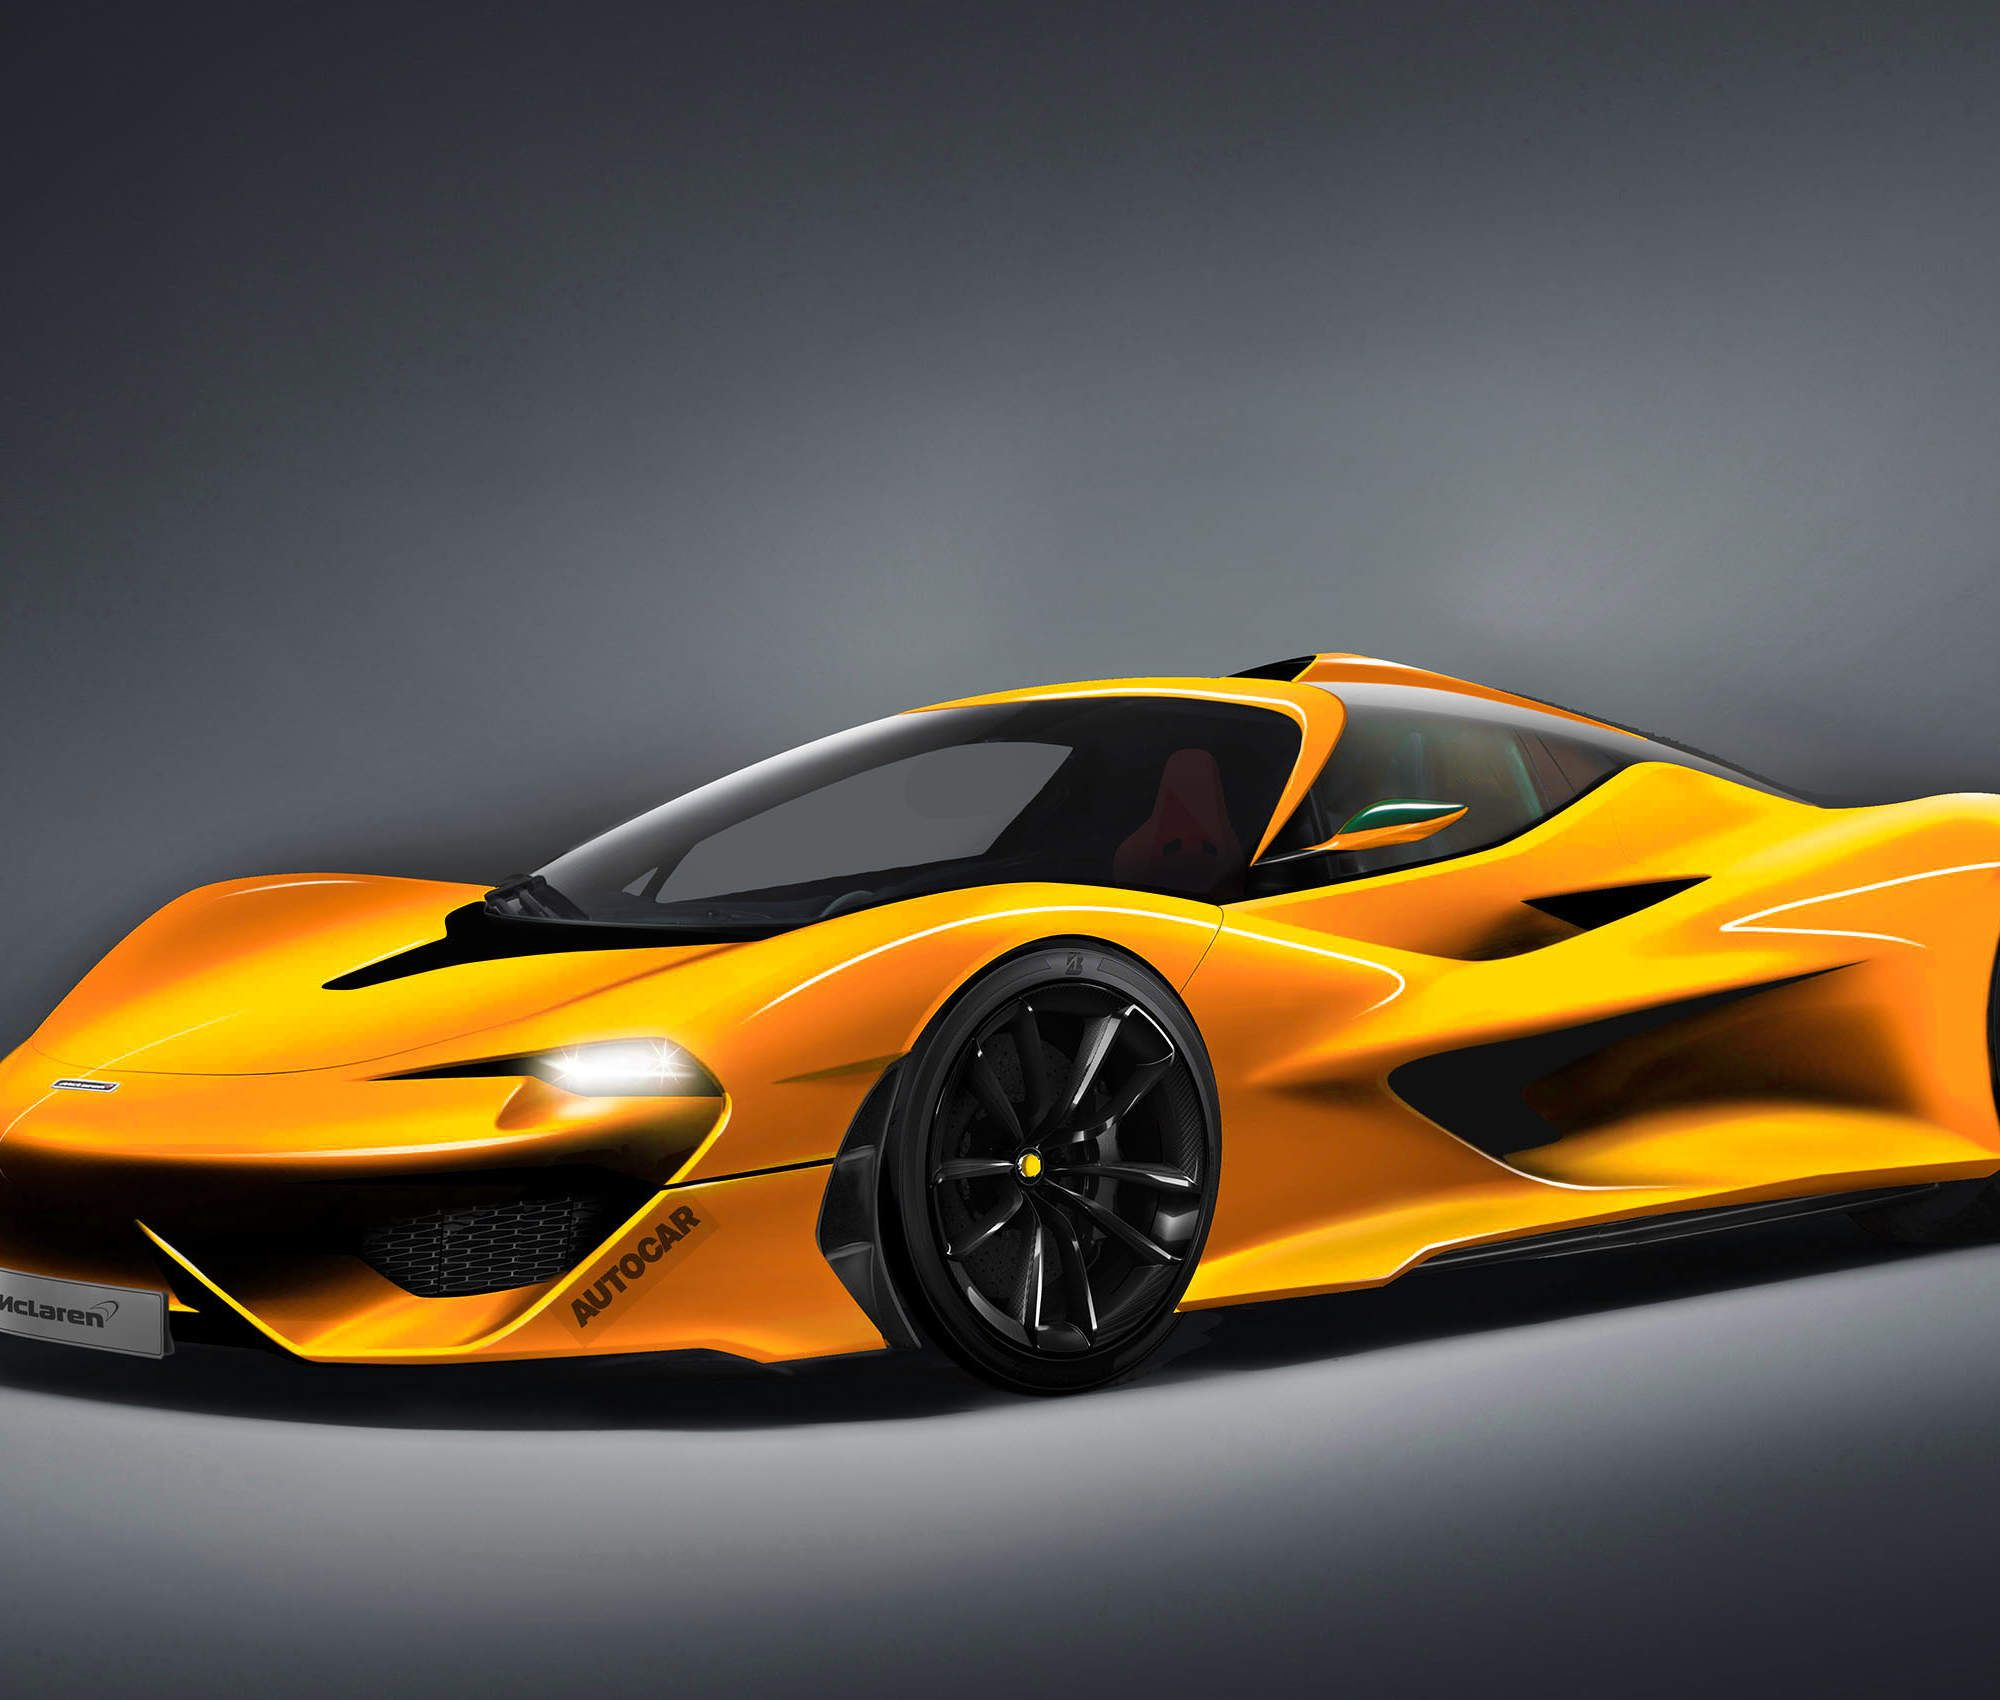 Mclaren S Bringing Back The Incomparable F1 Mclaren F1 Mclaren Gt Cars